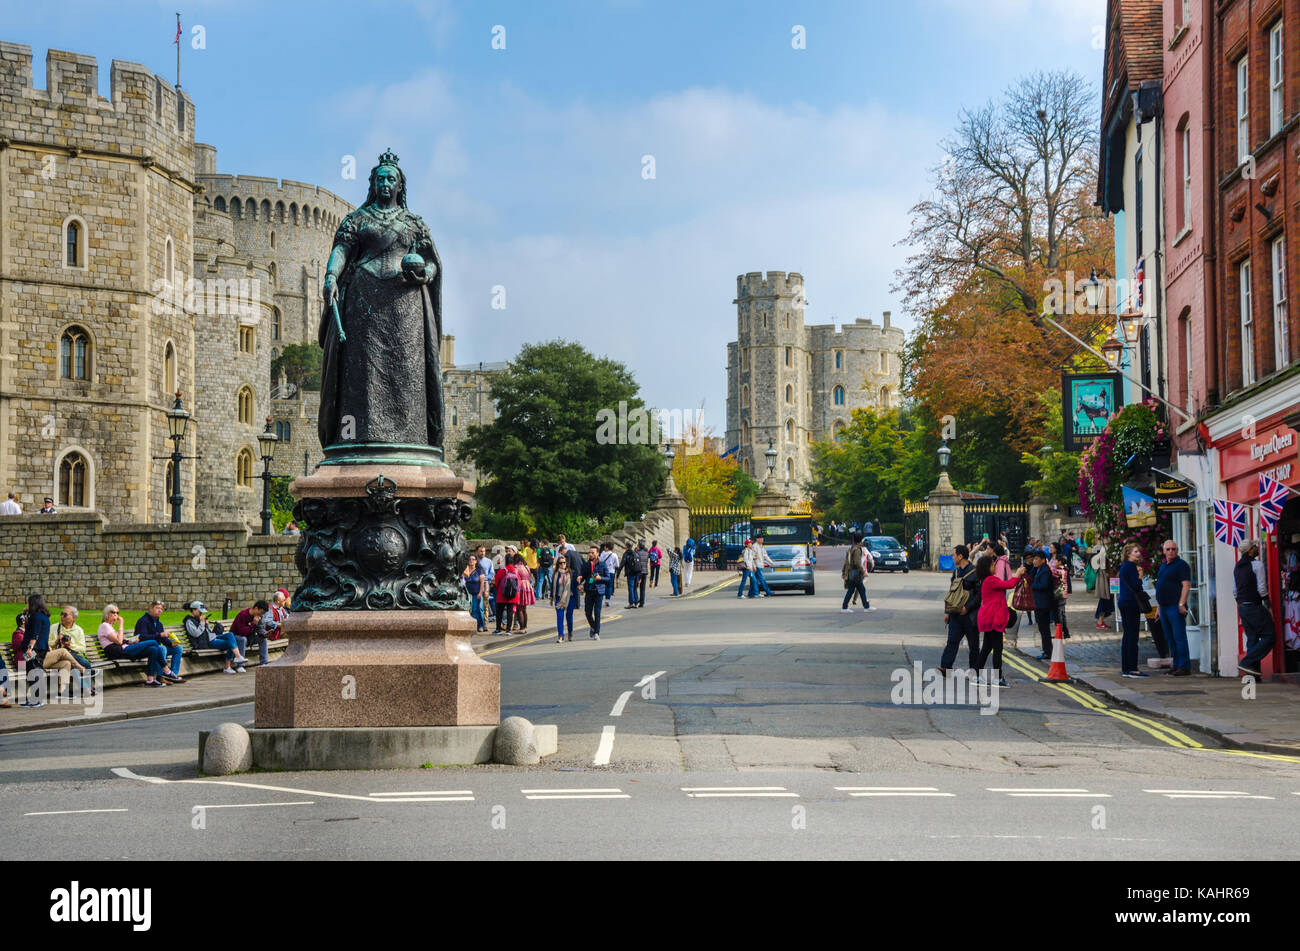 a-statue-of-queen-victoria-stands-outside-windsor-castle-in-windsor-KAHR69.jpg